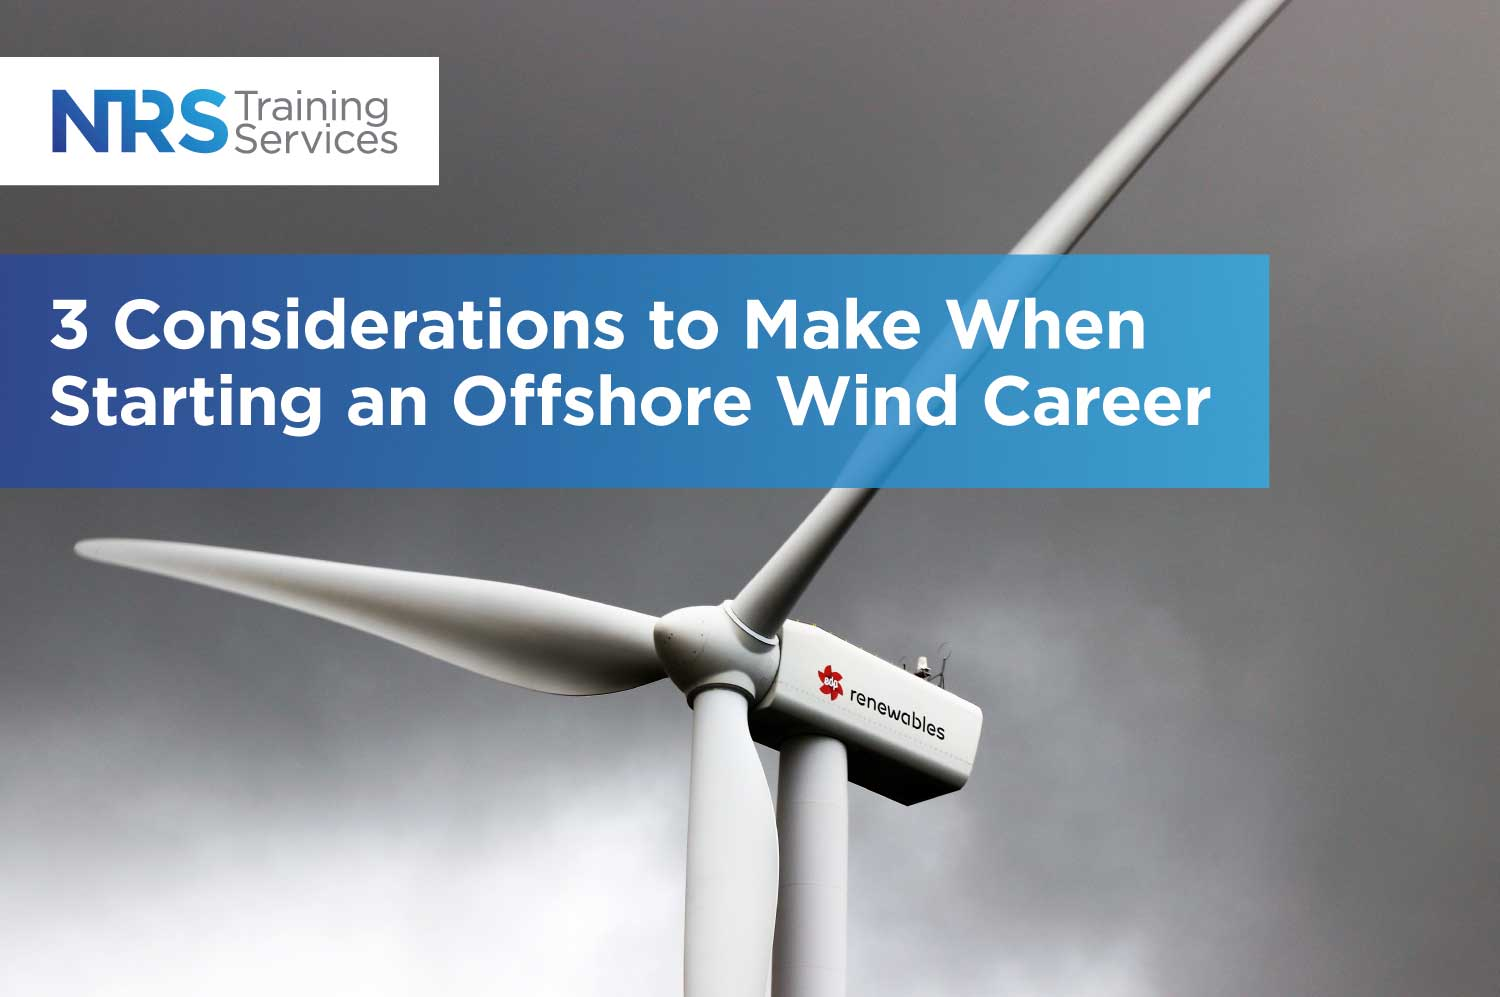 3 Considerations to Make When Starting an Offshore Wind Career